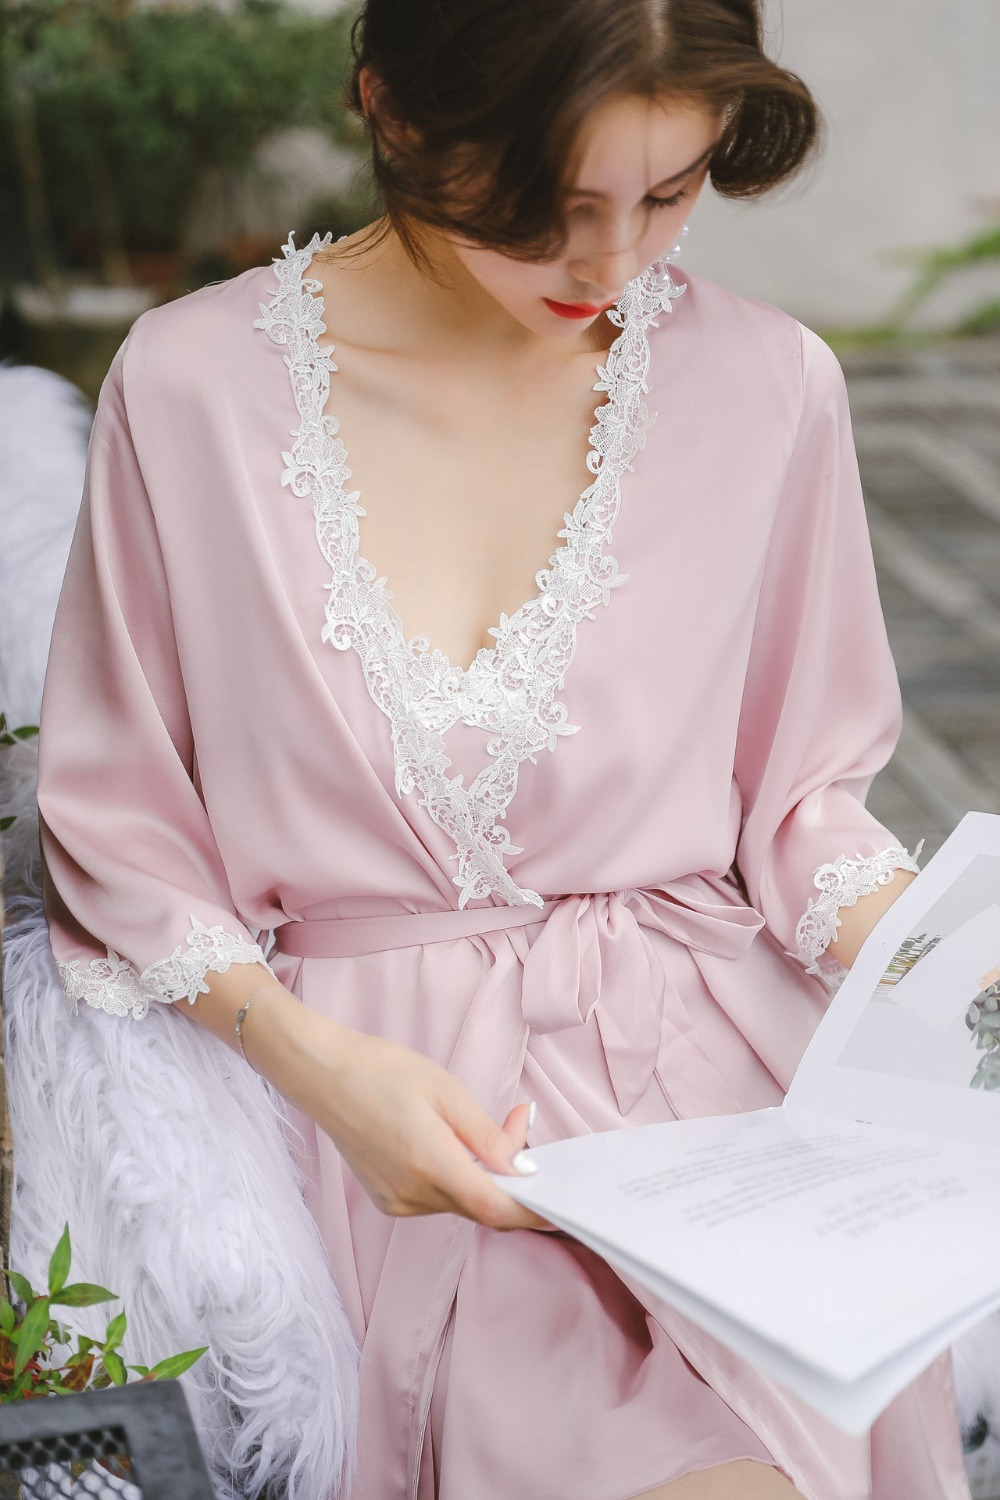 542db442b67 Autumn sexy pajamas 2 piece Robe beautiful lace gown sling stamp long white  nightdress Gown Sets women sleeping dress night wear-in Robe   Gown Sets  from ...